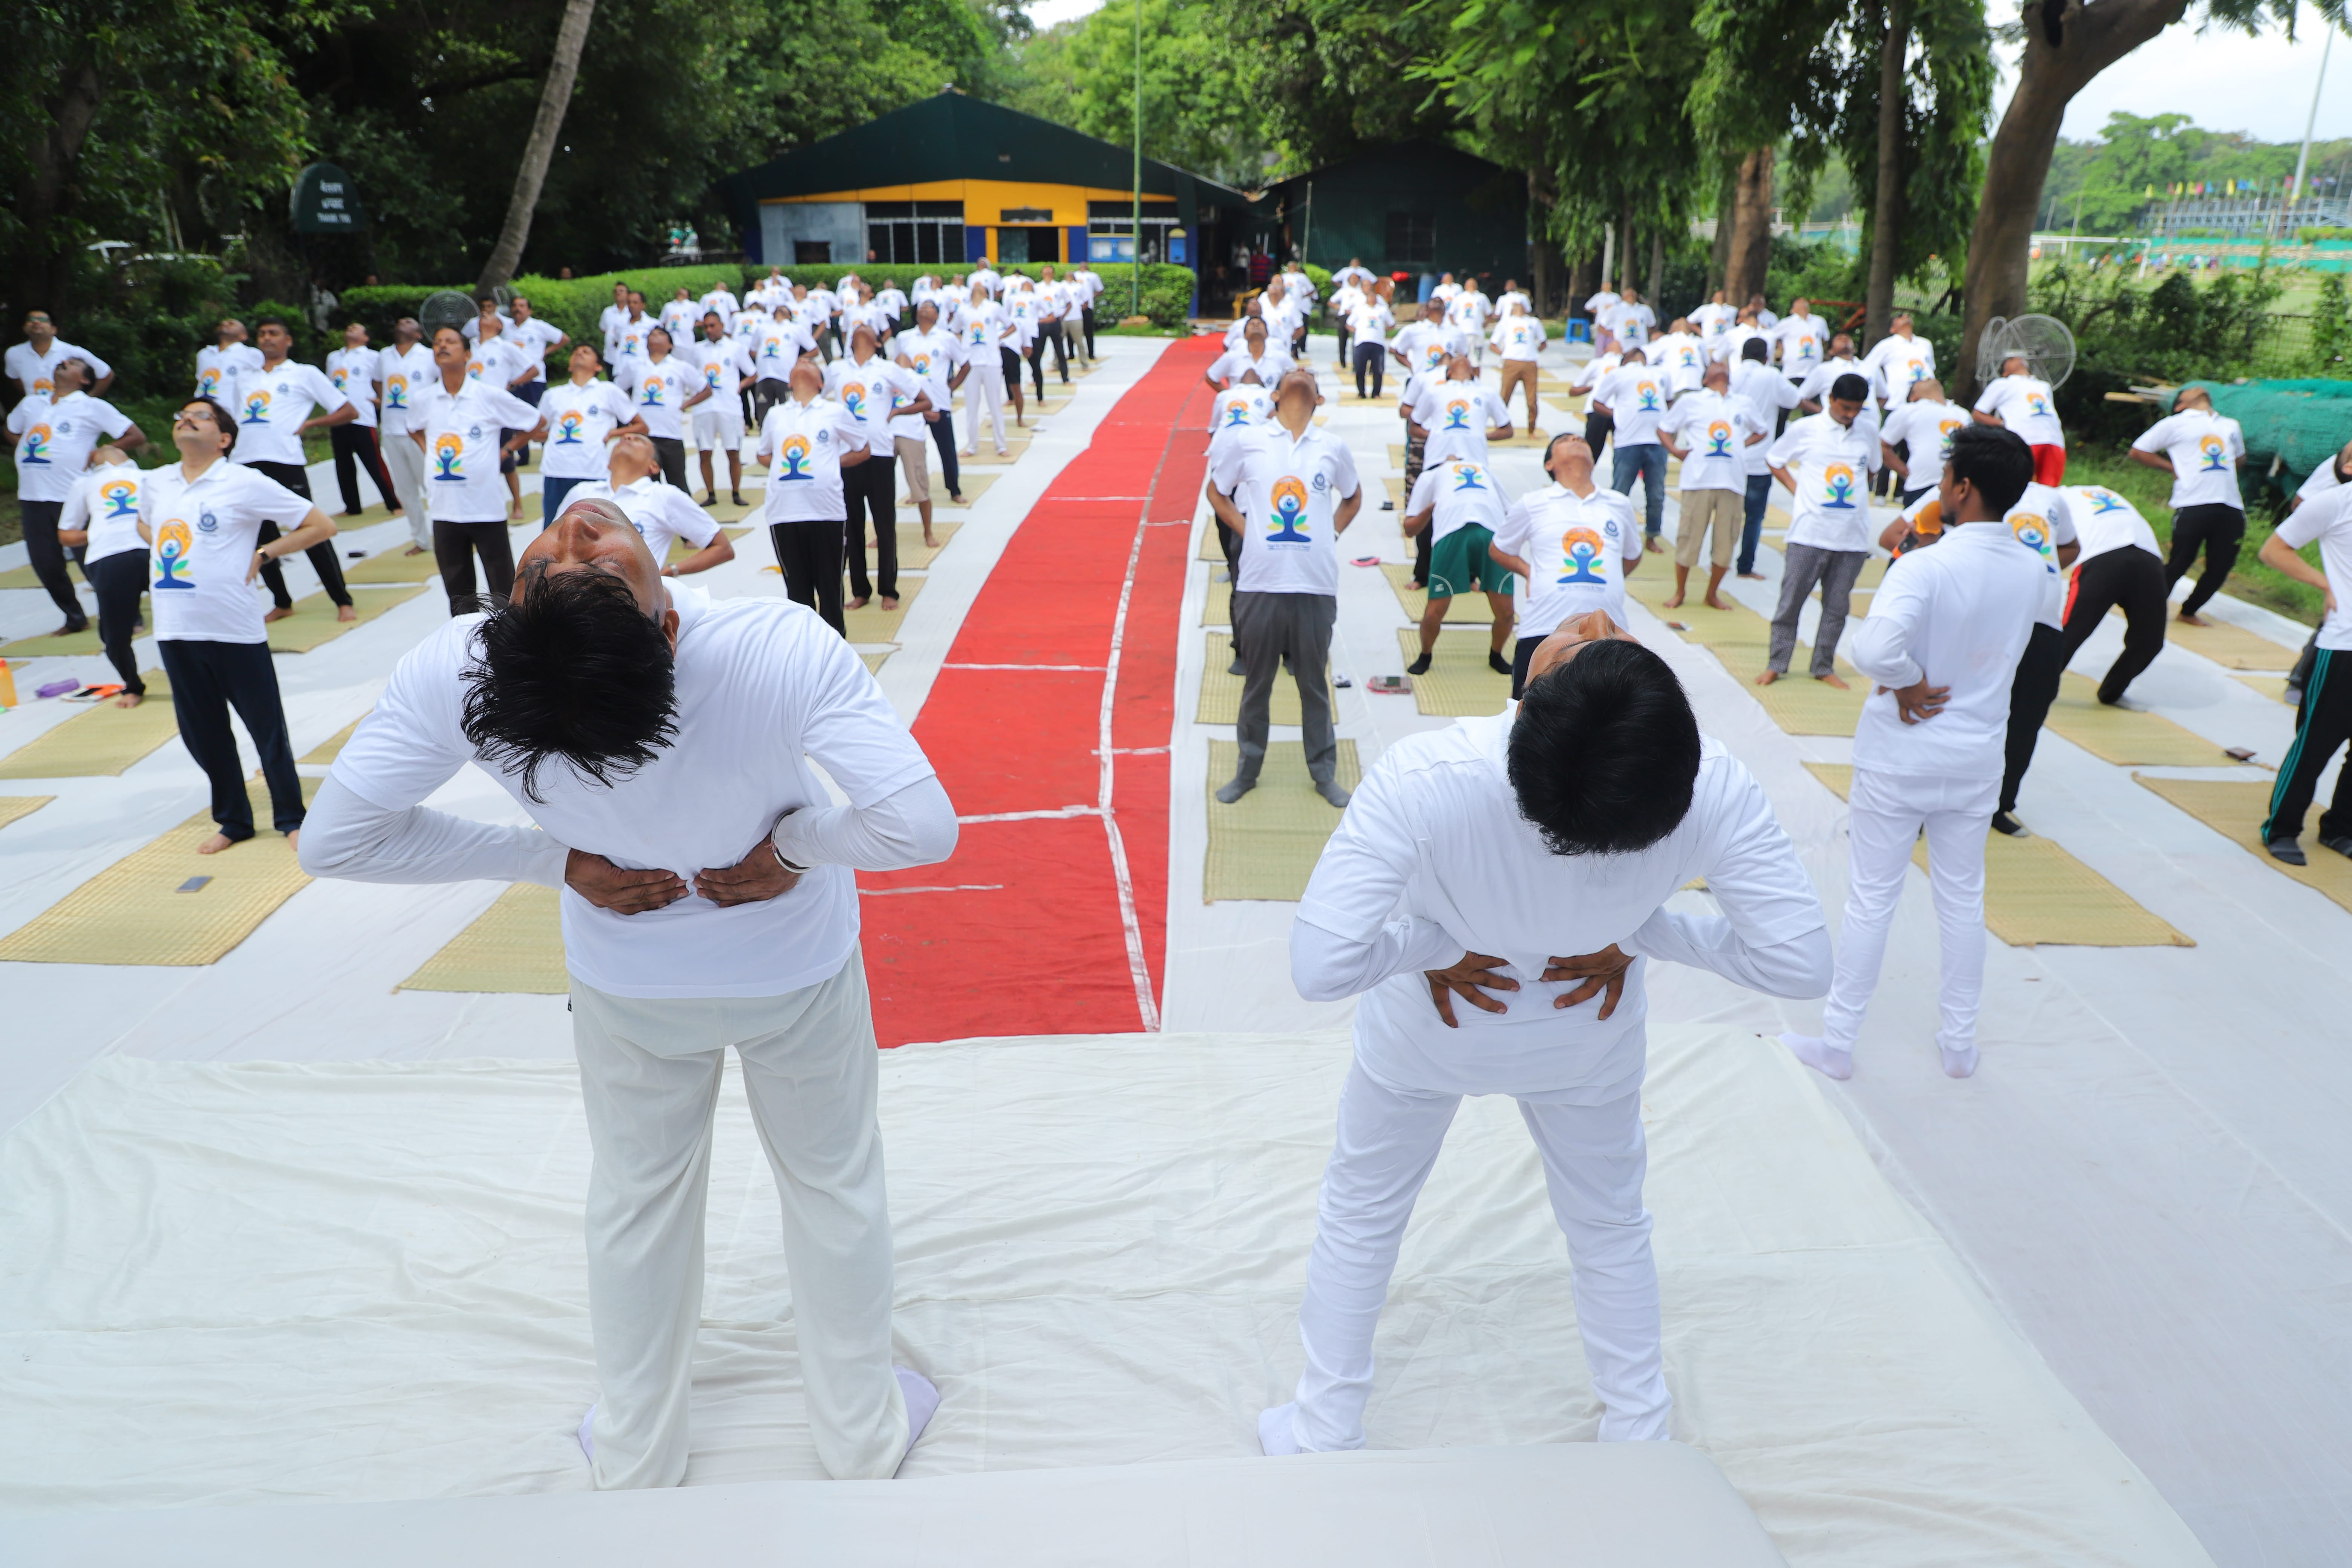 Fifth International day of yoga on 21th june, 2019